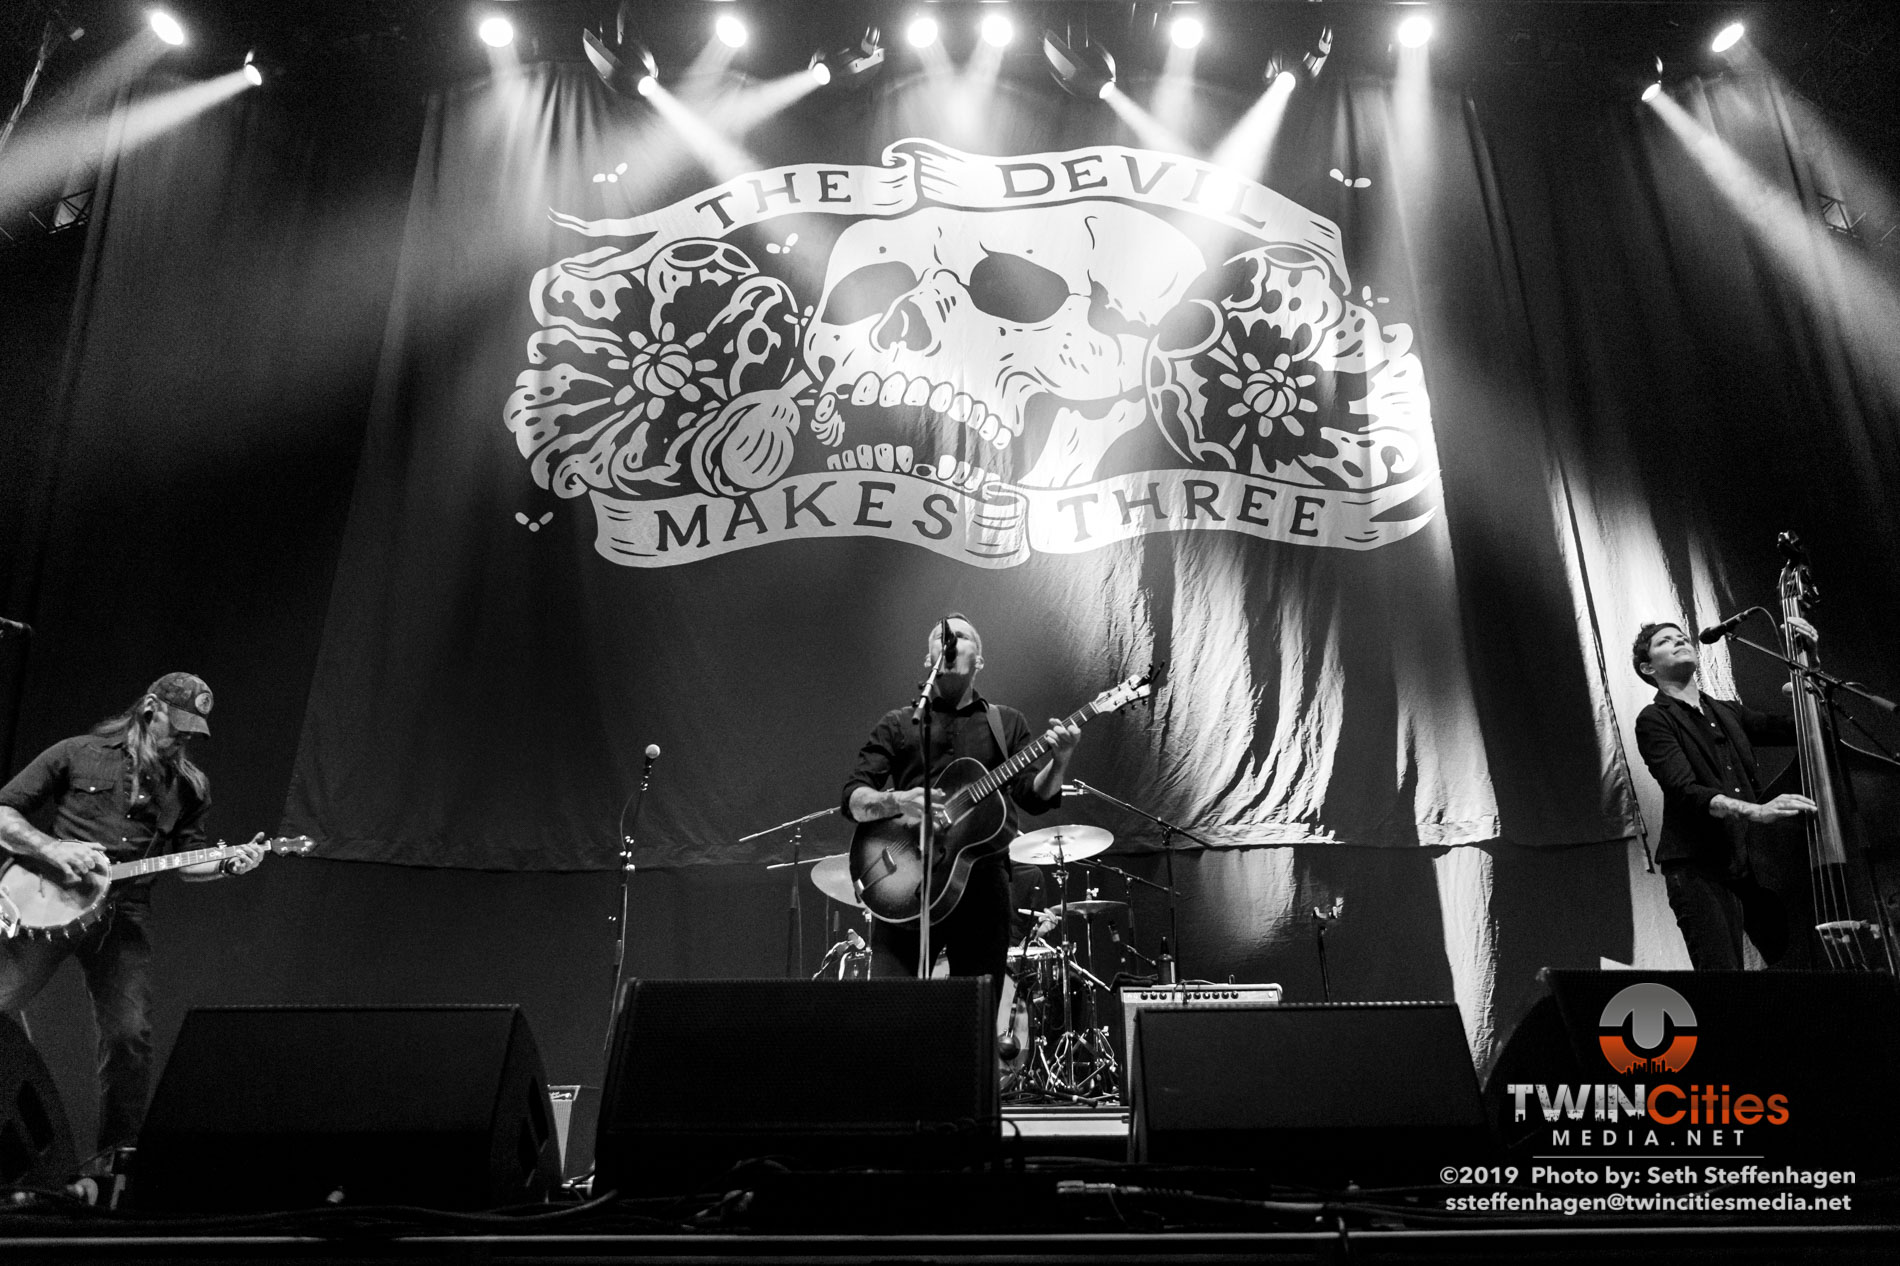 September 8, 2019 - Minneapolis, Minnesota, United States -  The Devil Makes Three live in concert at the The Armory opening for co-headliners Social Distortion and Flogging Molly.  (Photo by Seth Steffenhagen/Steffenhagen Photography)